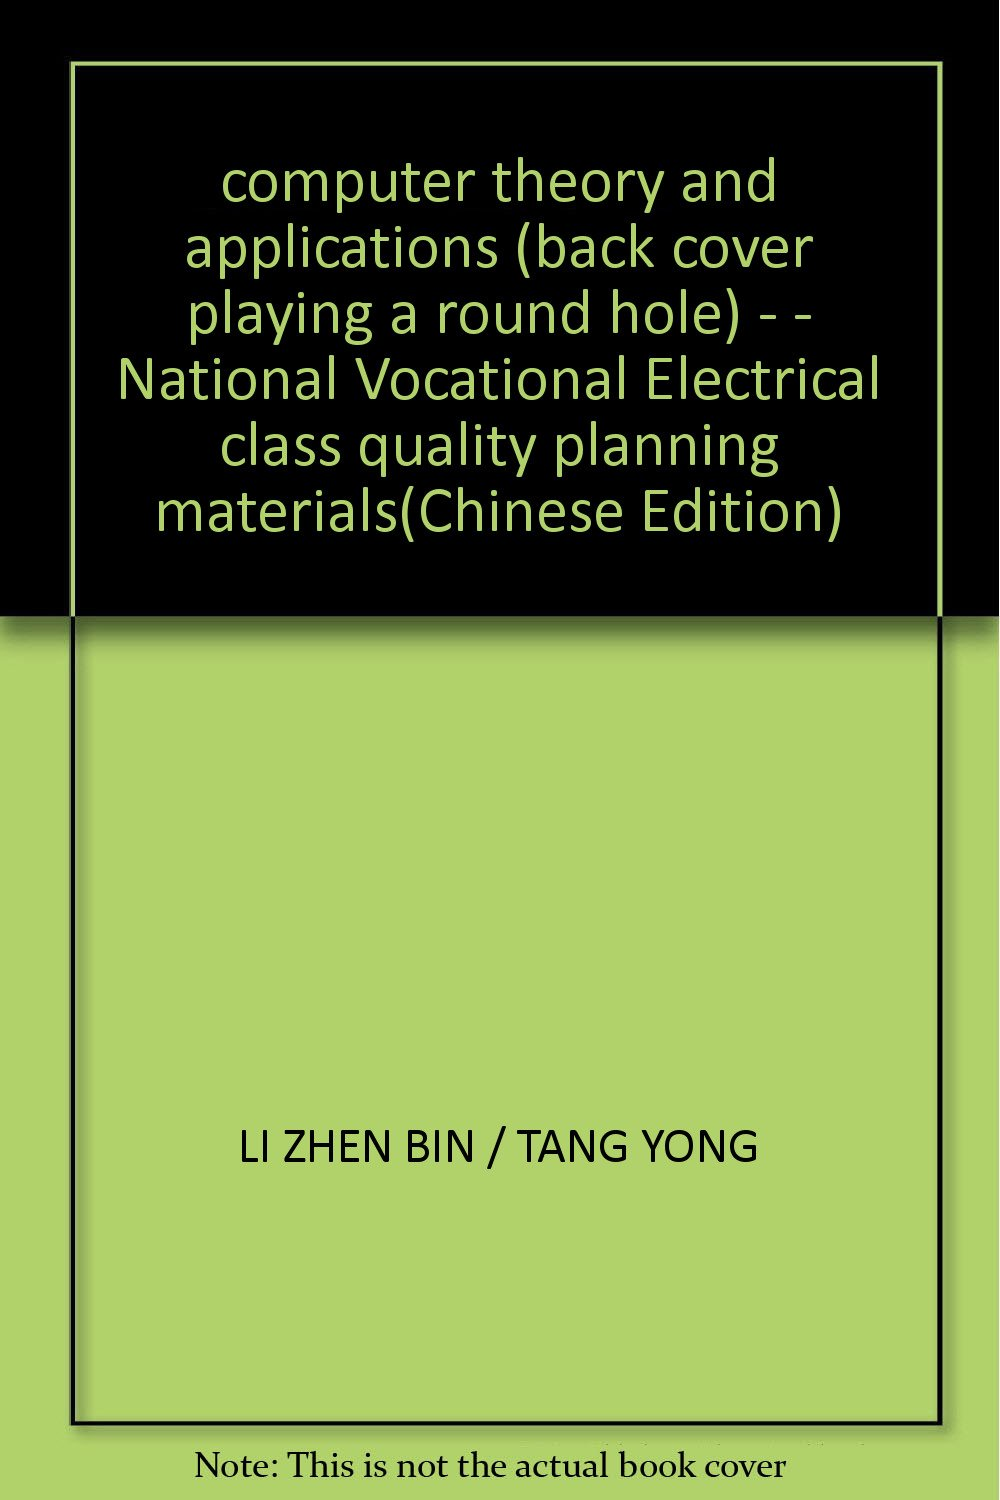 computer theory and applications (back cover playing a round hole) - - National Vocational Electrical class quality planning materials(Chinese Edition) PDF